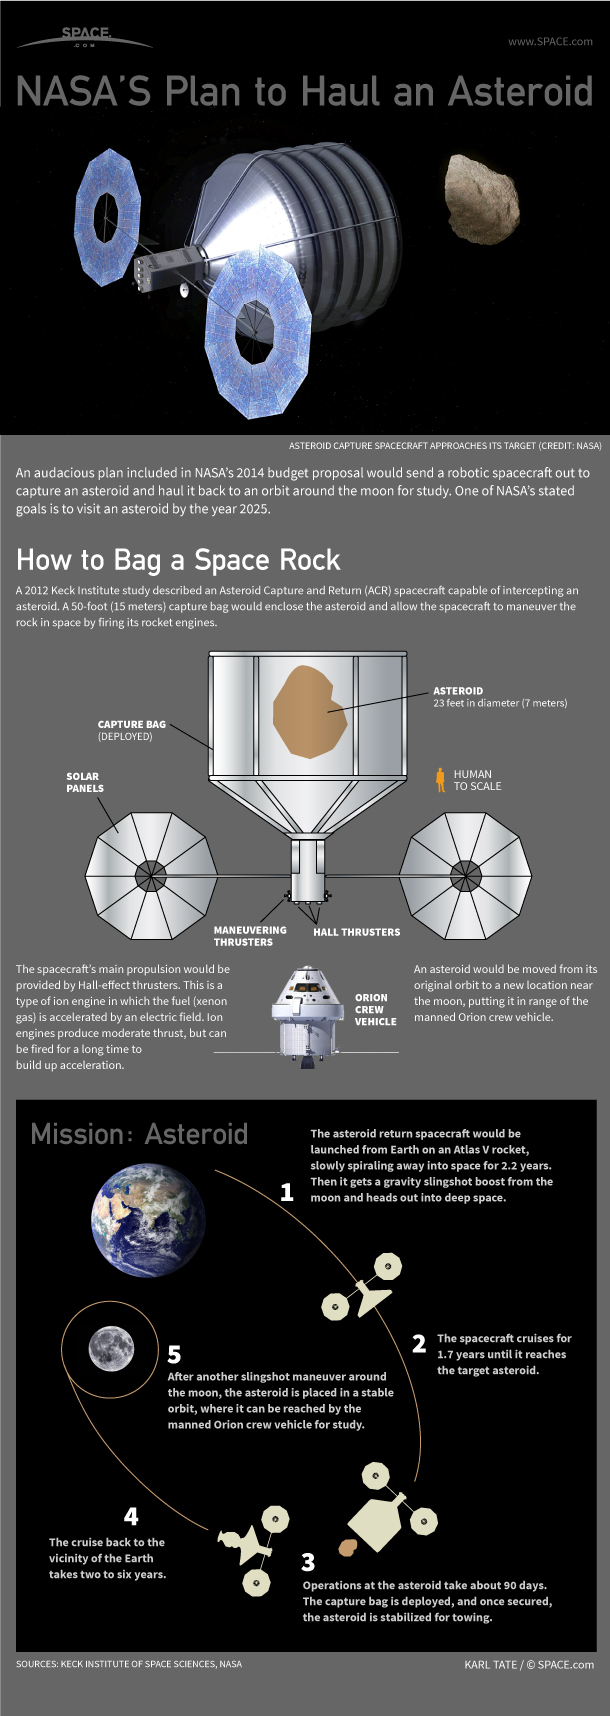 How to Catch an Asteroid: NASA Mission Explained (Infographic)